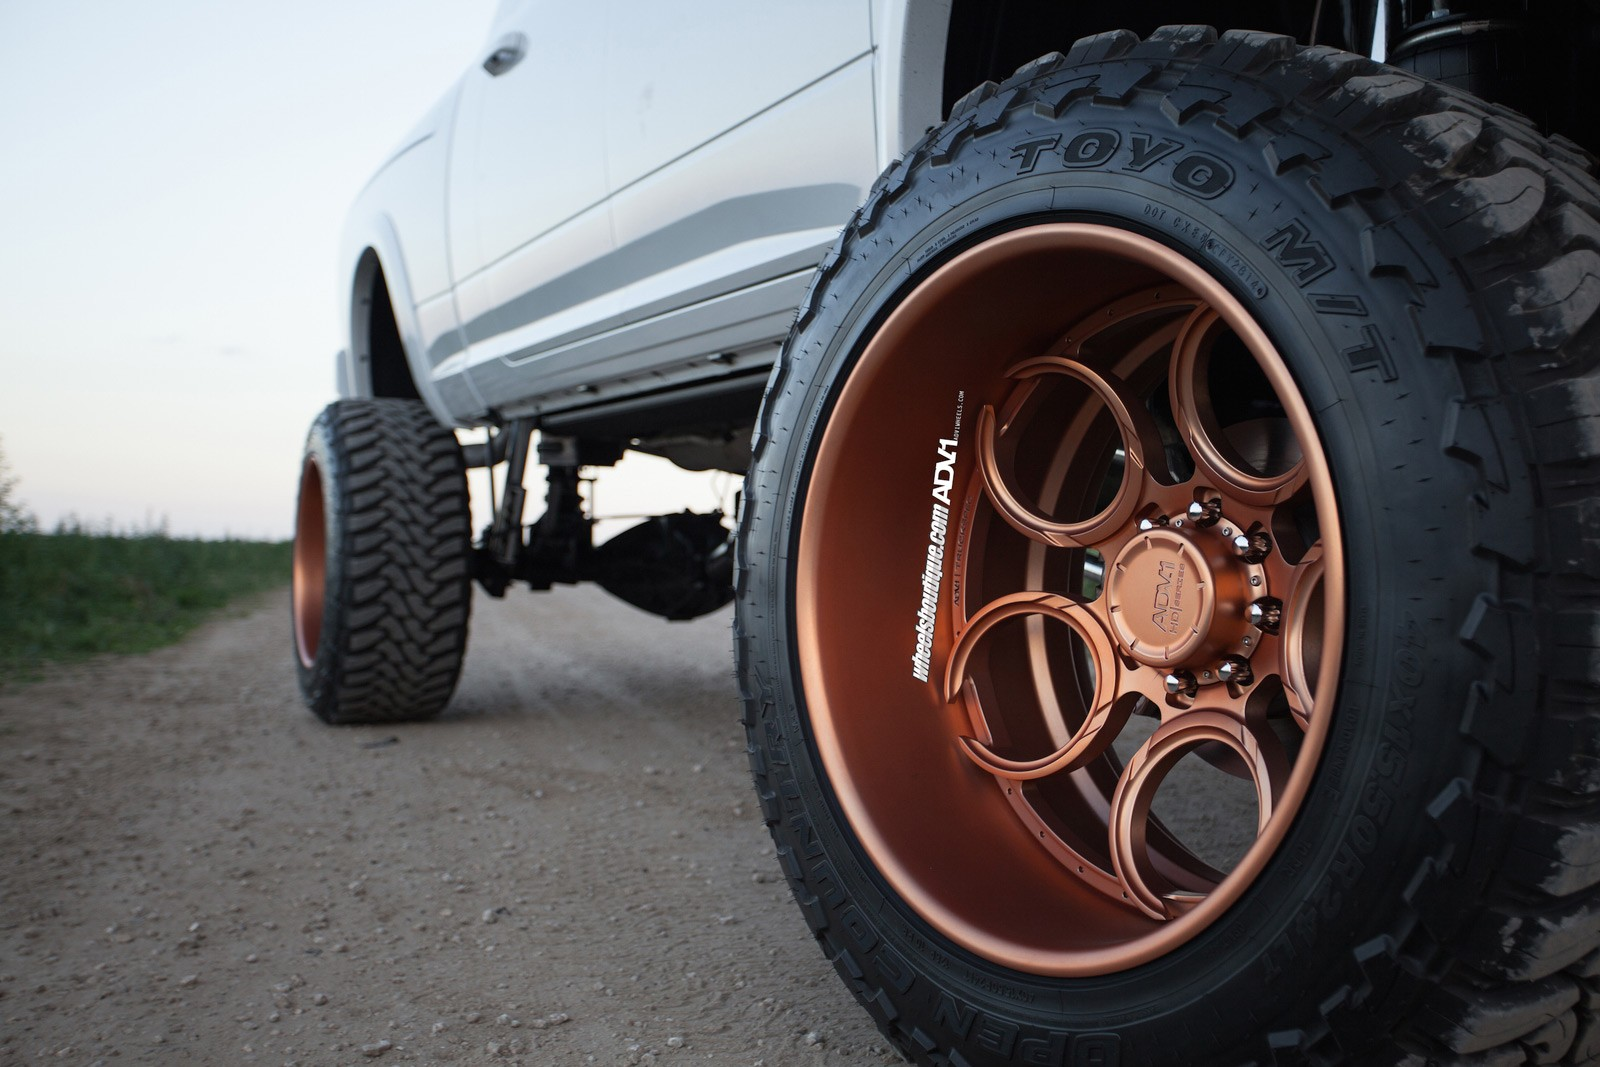 Lifted Ram 2500 On Rose Gold Wheels Meets a Horse - autoevolution